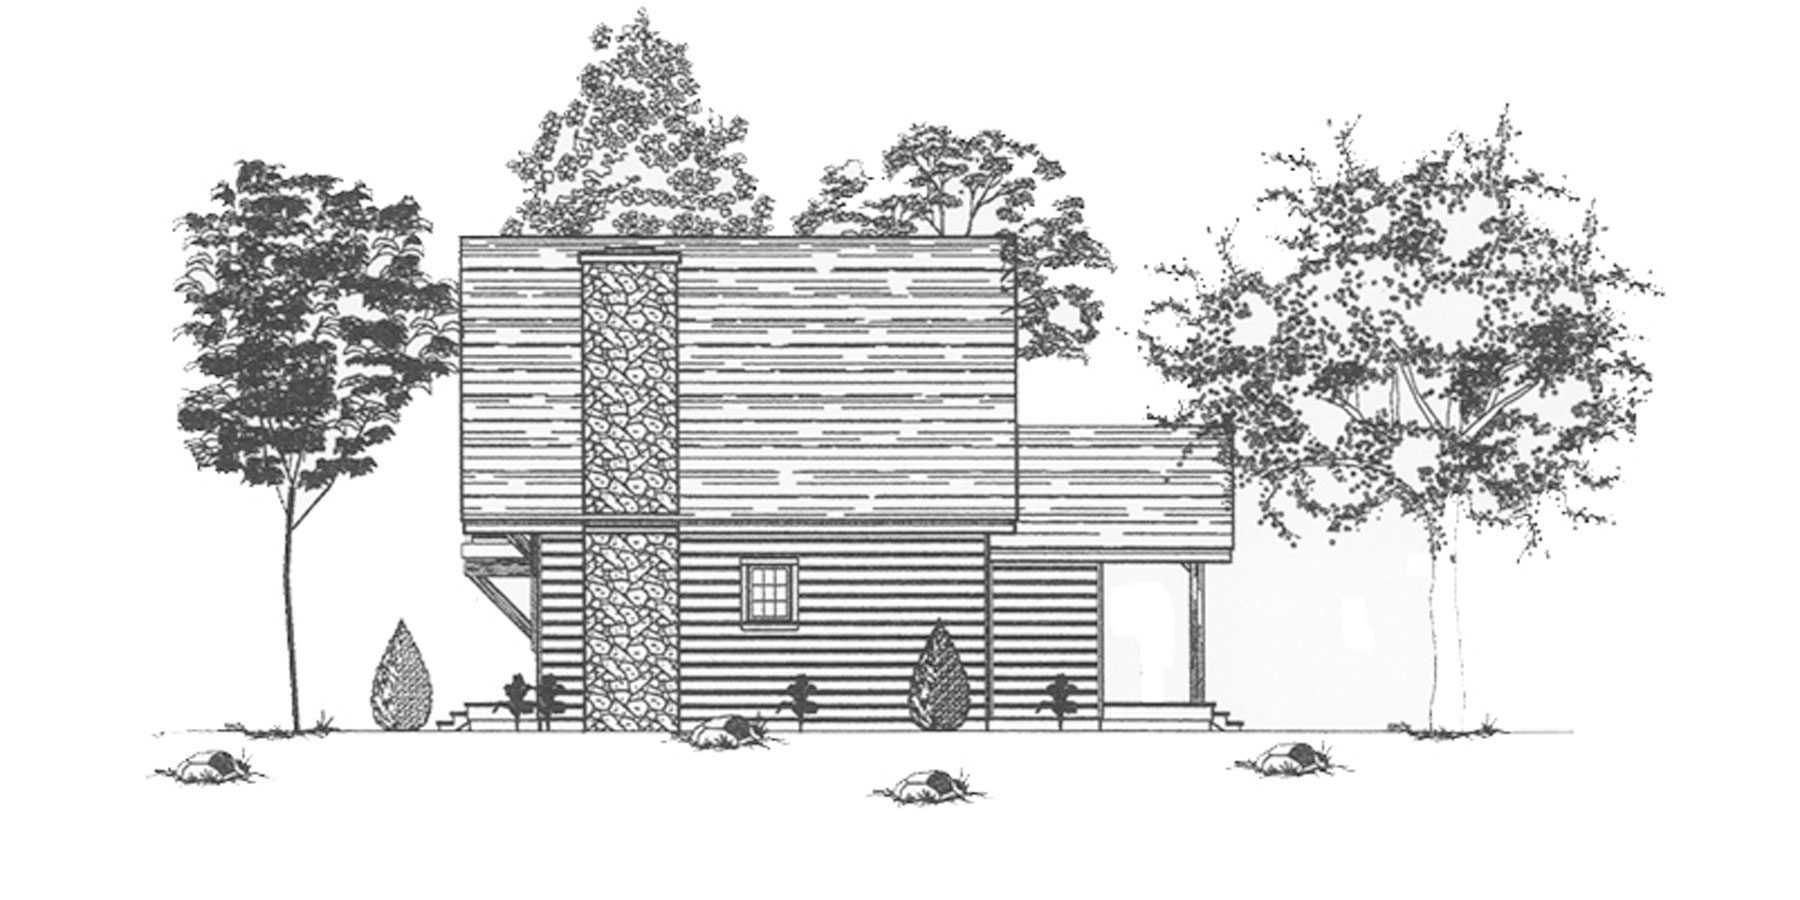 Normerica Timber Frames, House Plan, The Jackson 3605, Right Elevation